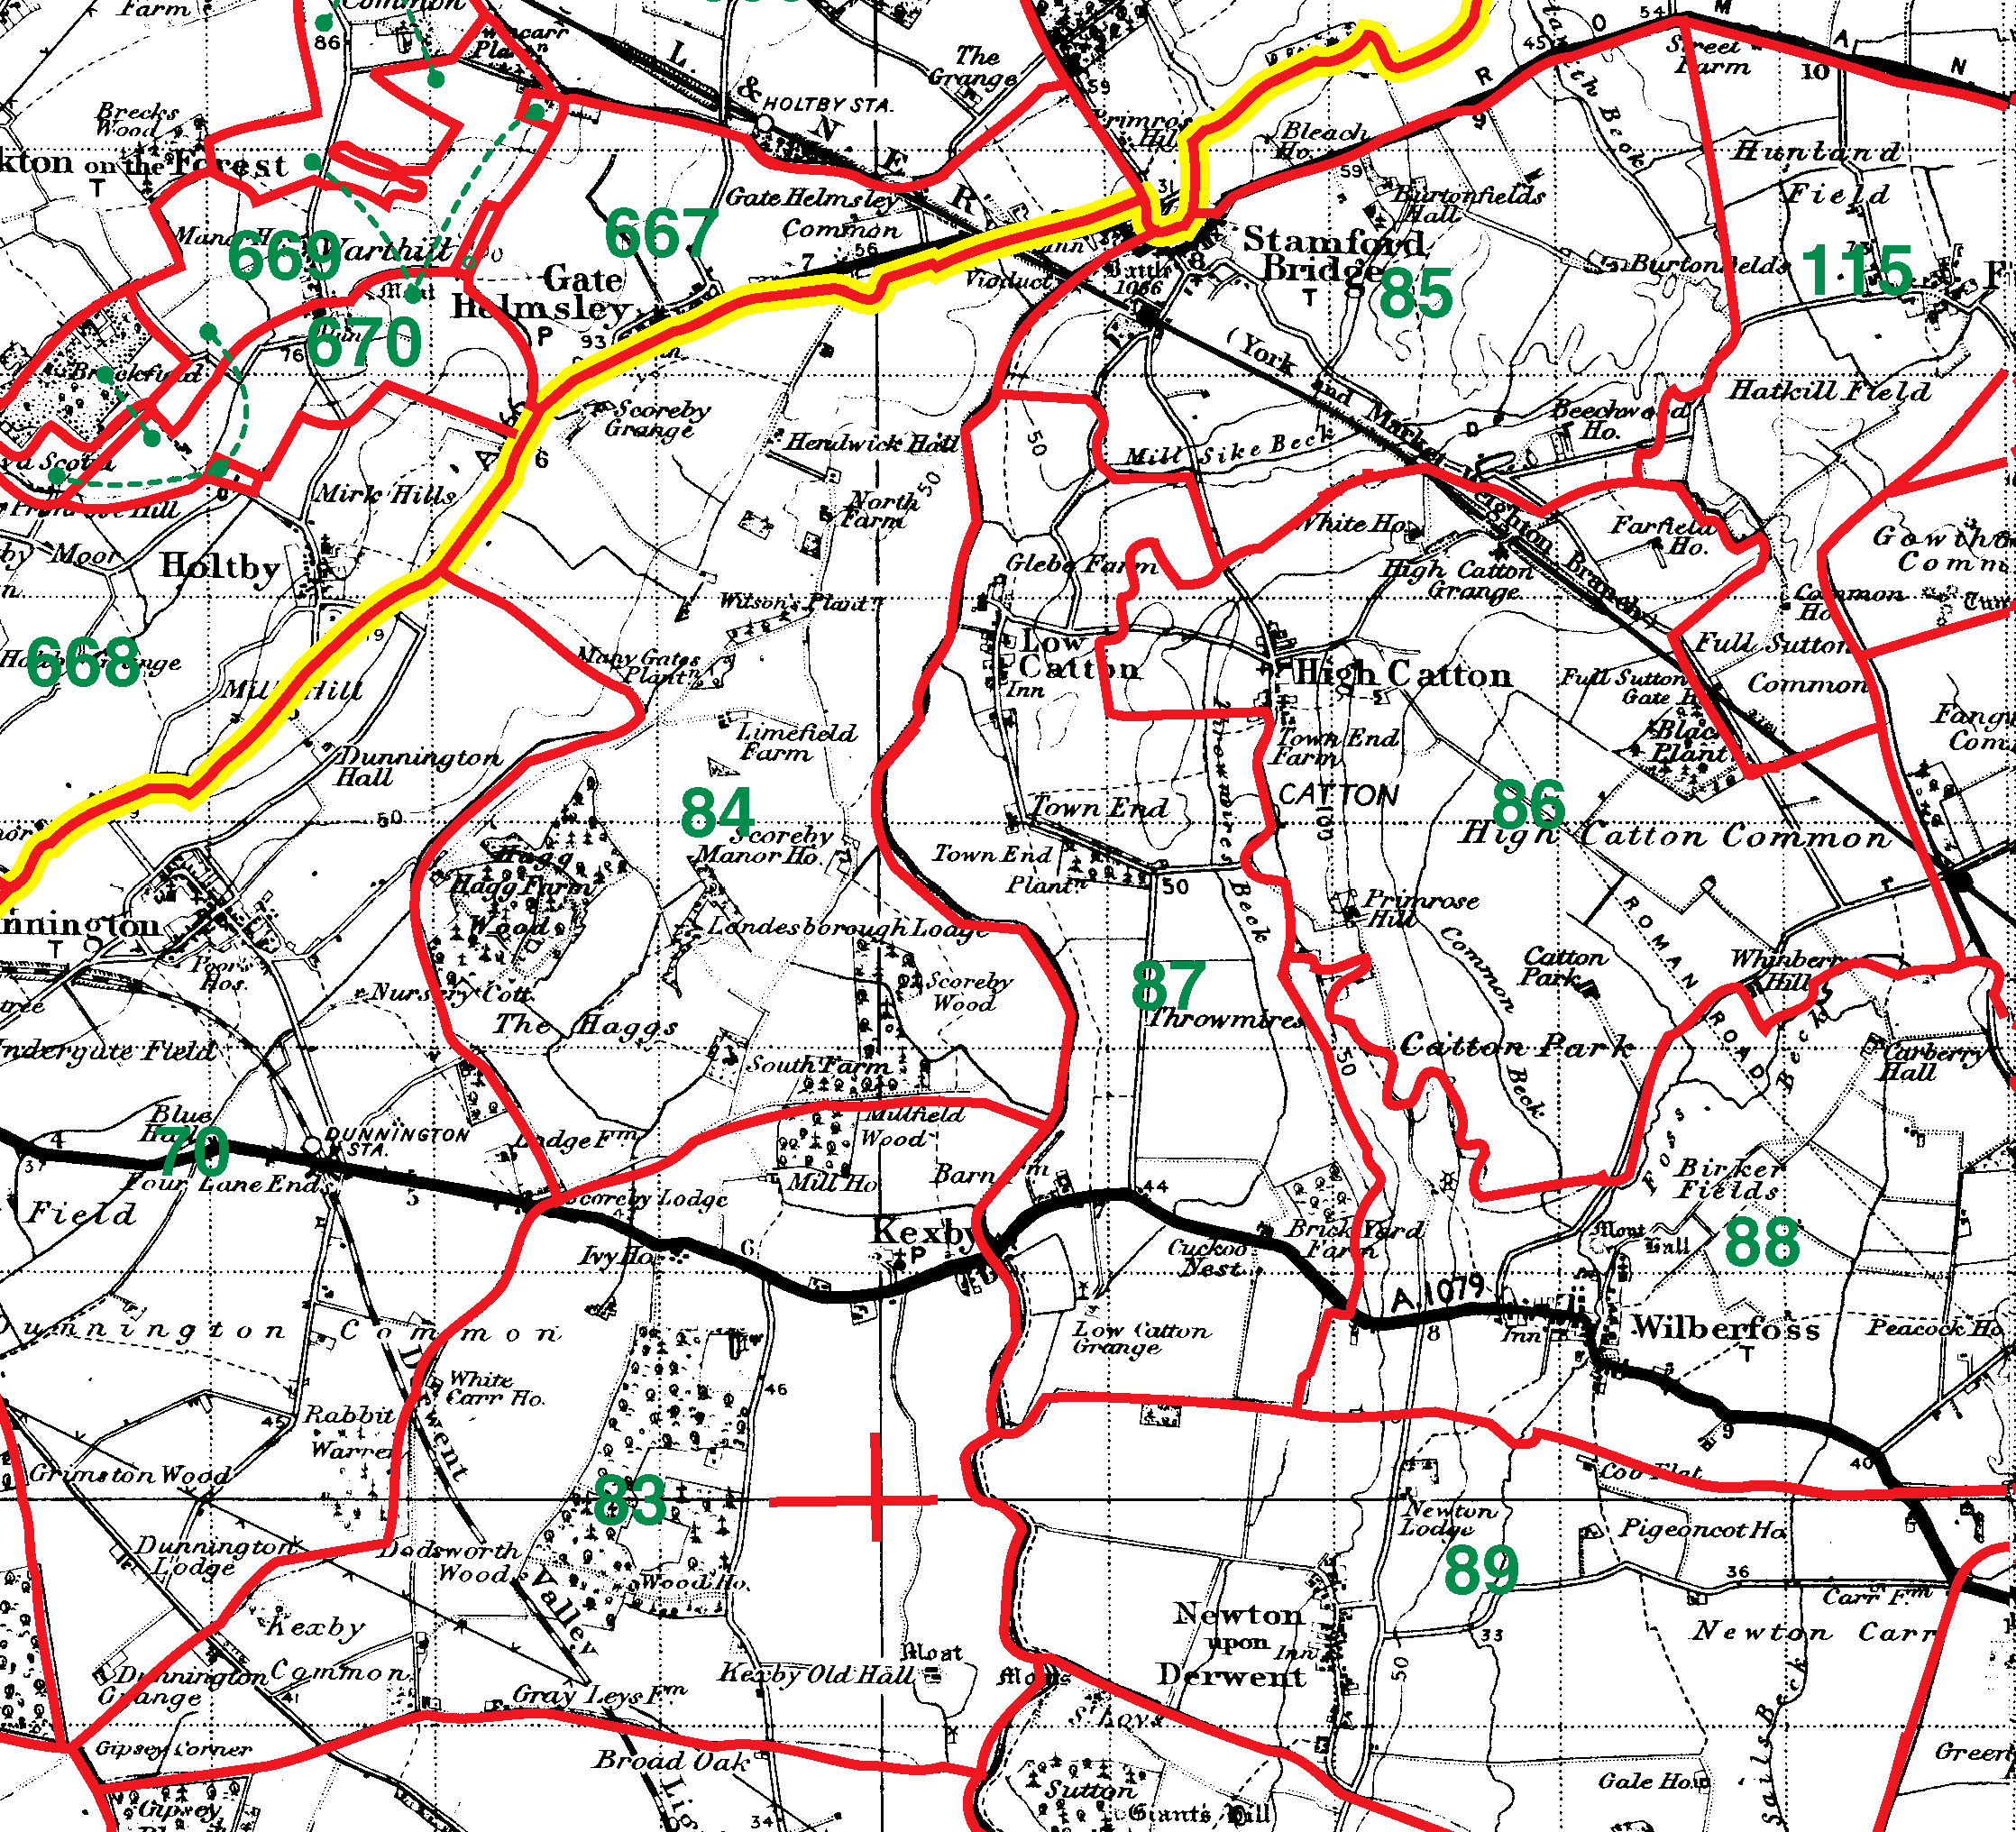 Low Catton boundaries map